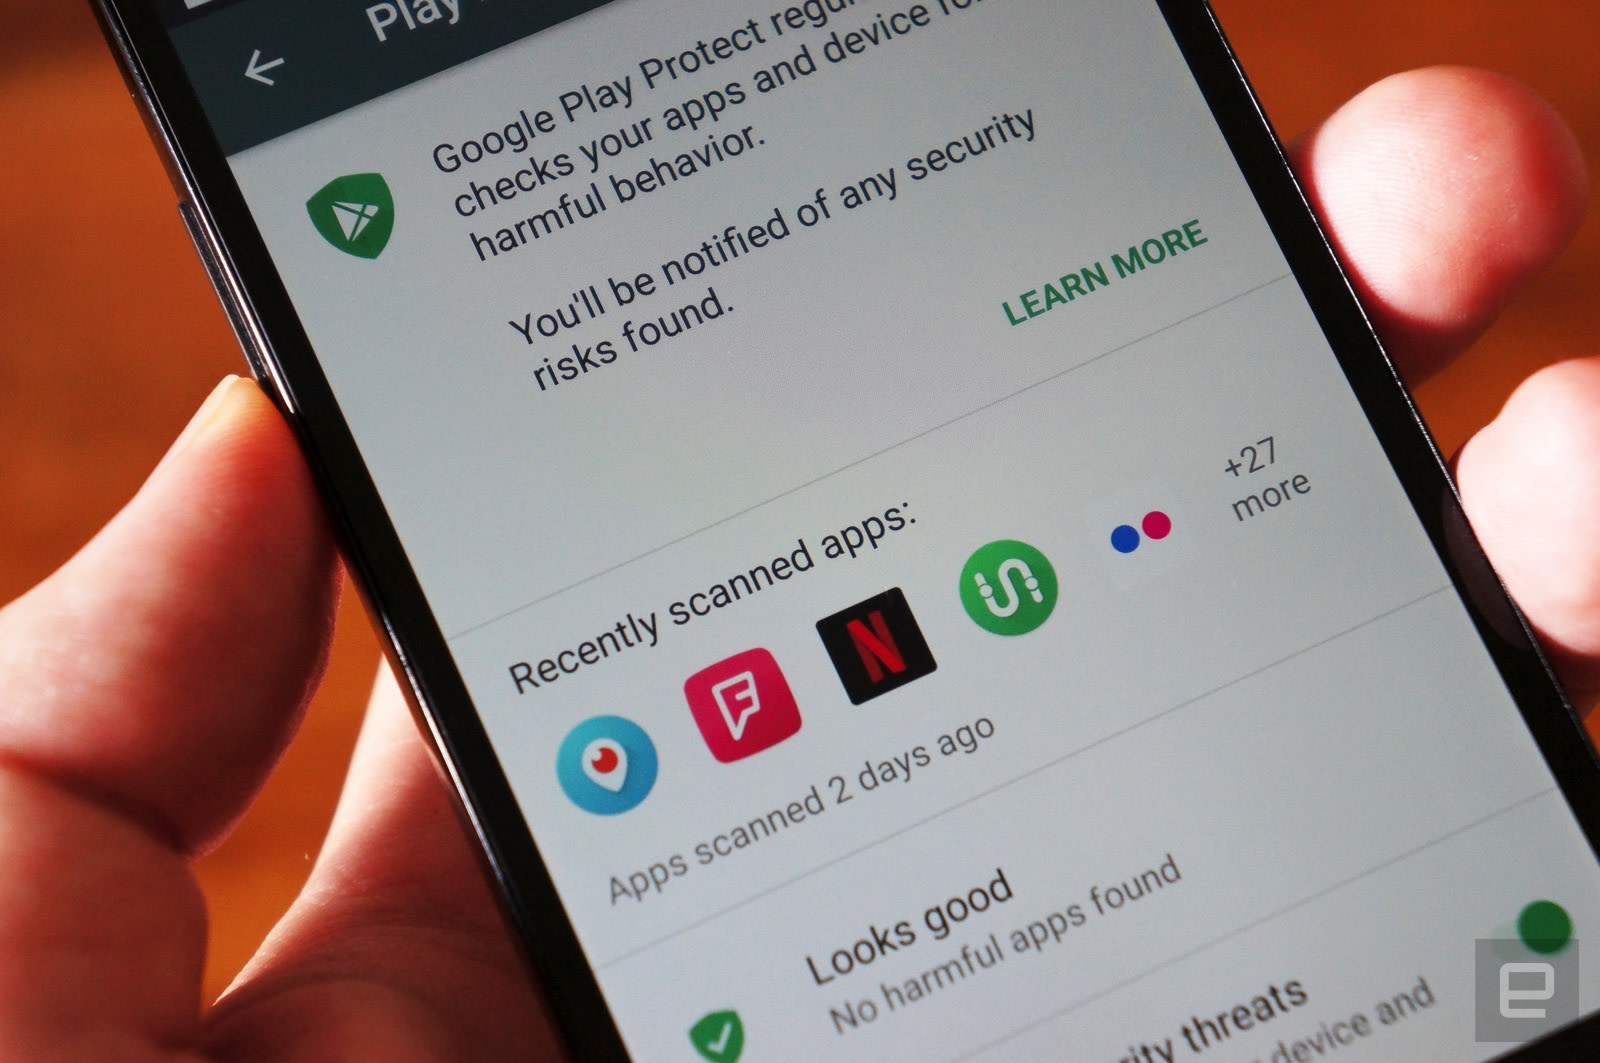 Google's safeguard against rogue Android apps is now available